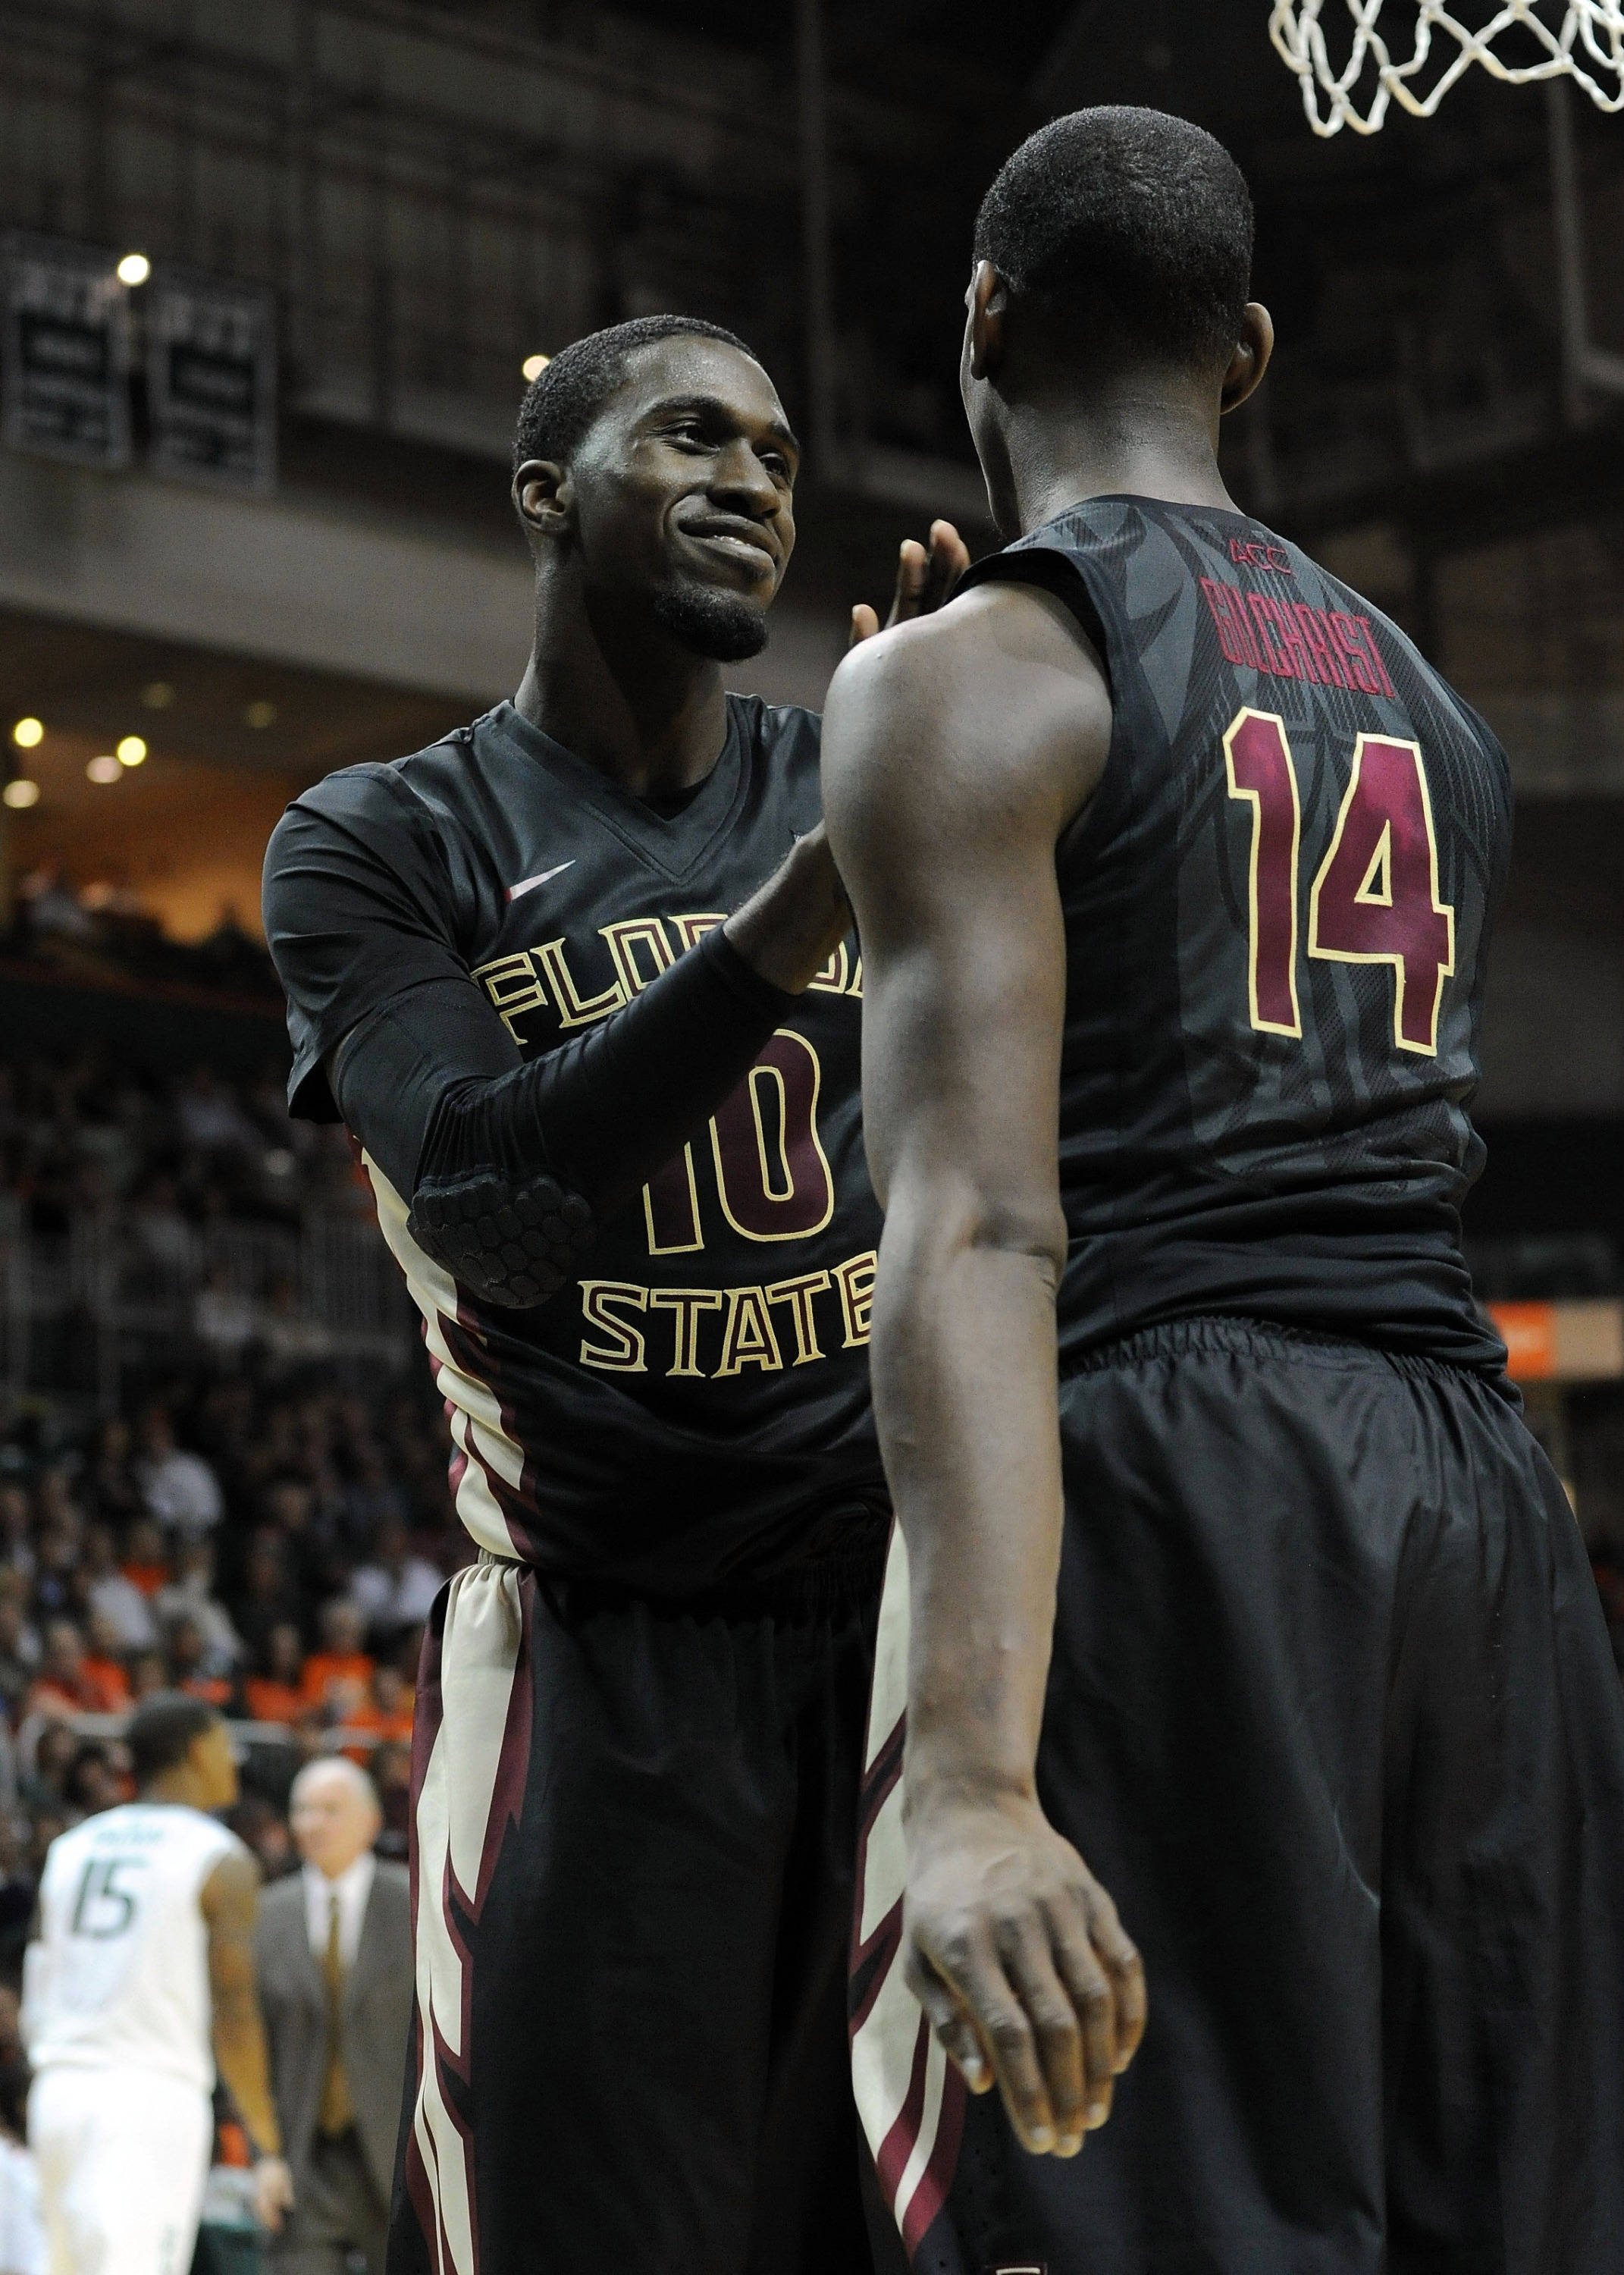 Jan 15, 2014; Coral Gables, FL, USA; Seminoles forward Okaro White (left) greets forward Robert Gilchrist (right) during the second half. Steve Mitchell-USA TODAY Sports